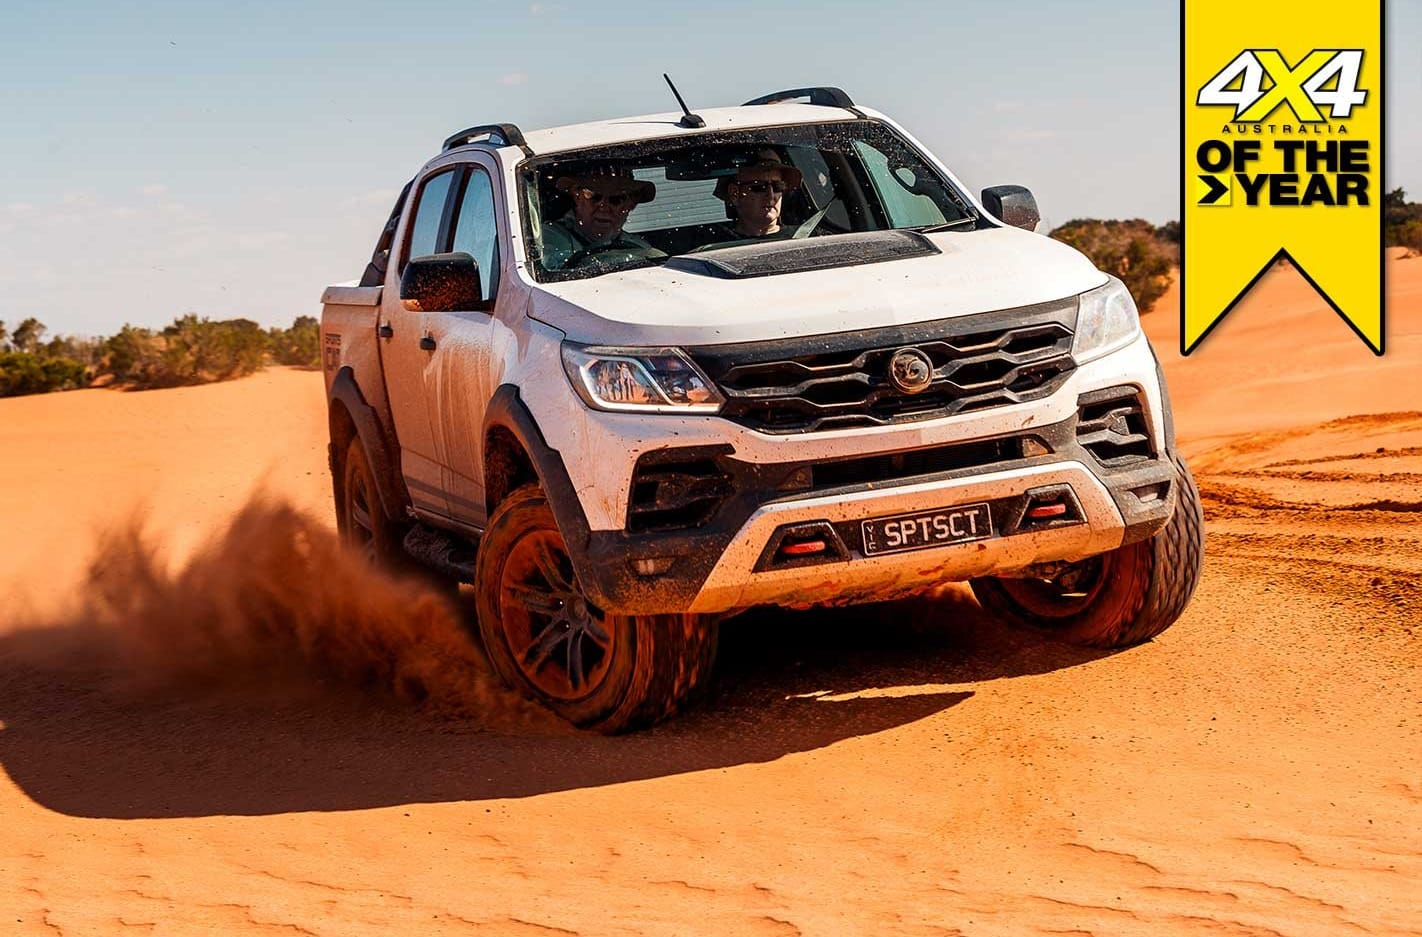 HSV Colorado SportsCat 2019 4x4 of the Year contender